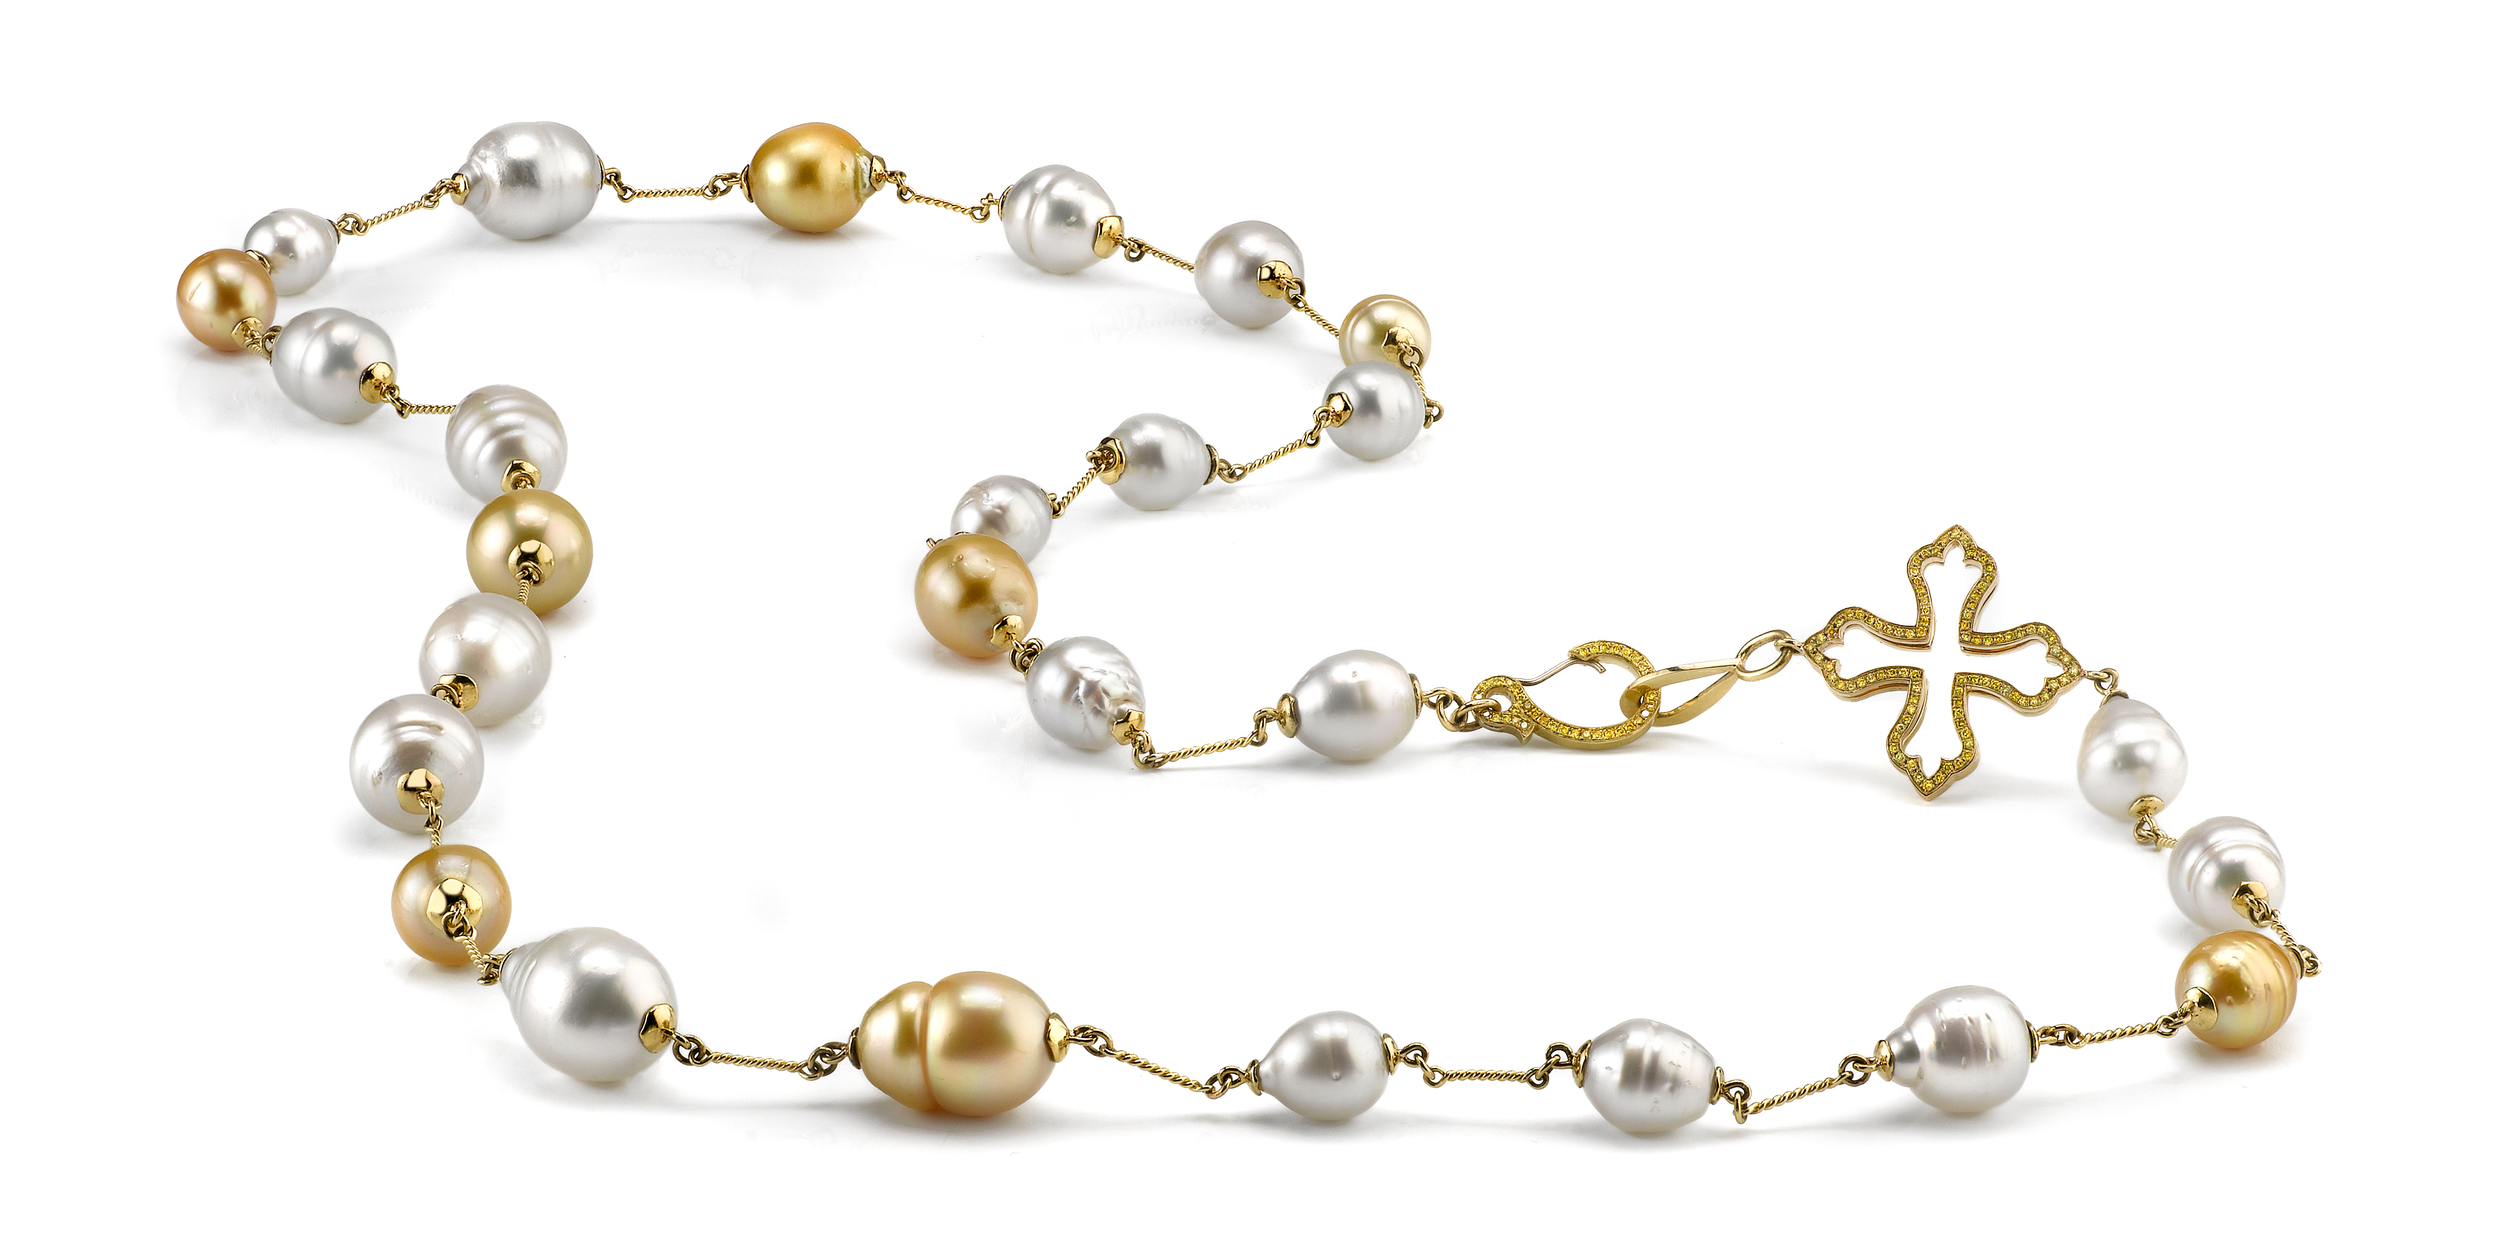 South Sea Pearl Necklace, 18 Karat Yellow Gold, accented with Vivid Yellow Diamonds